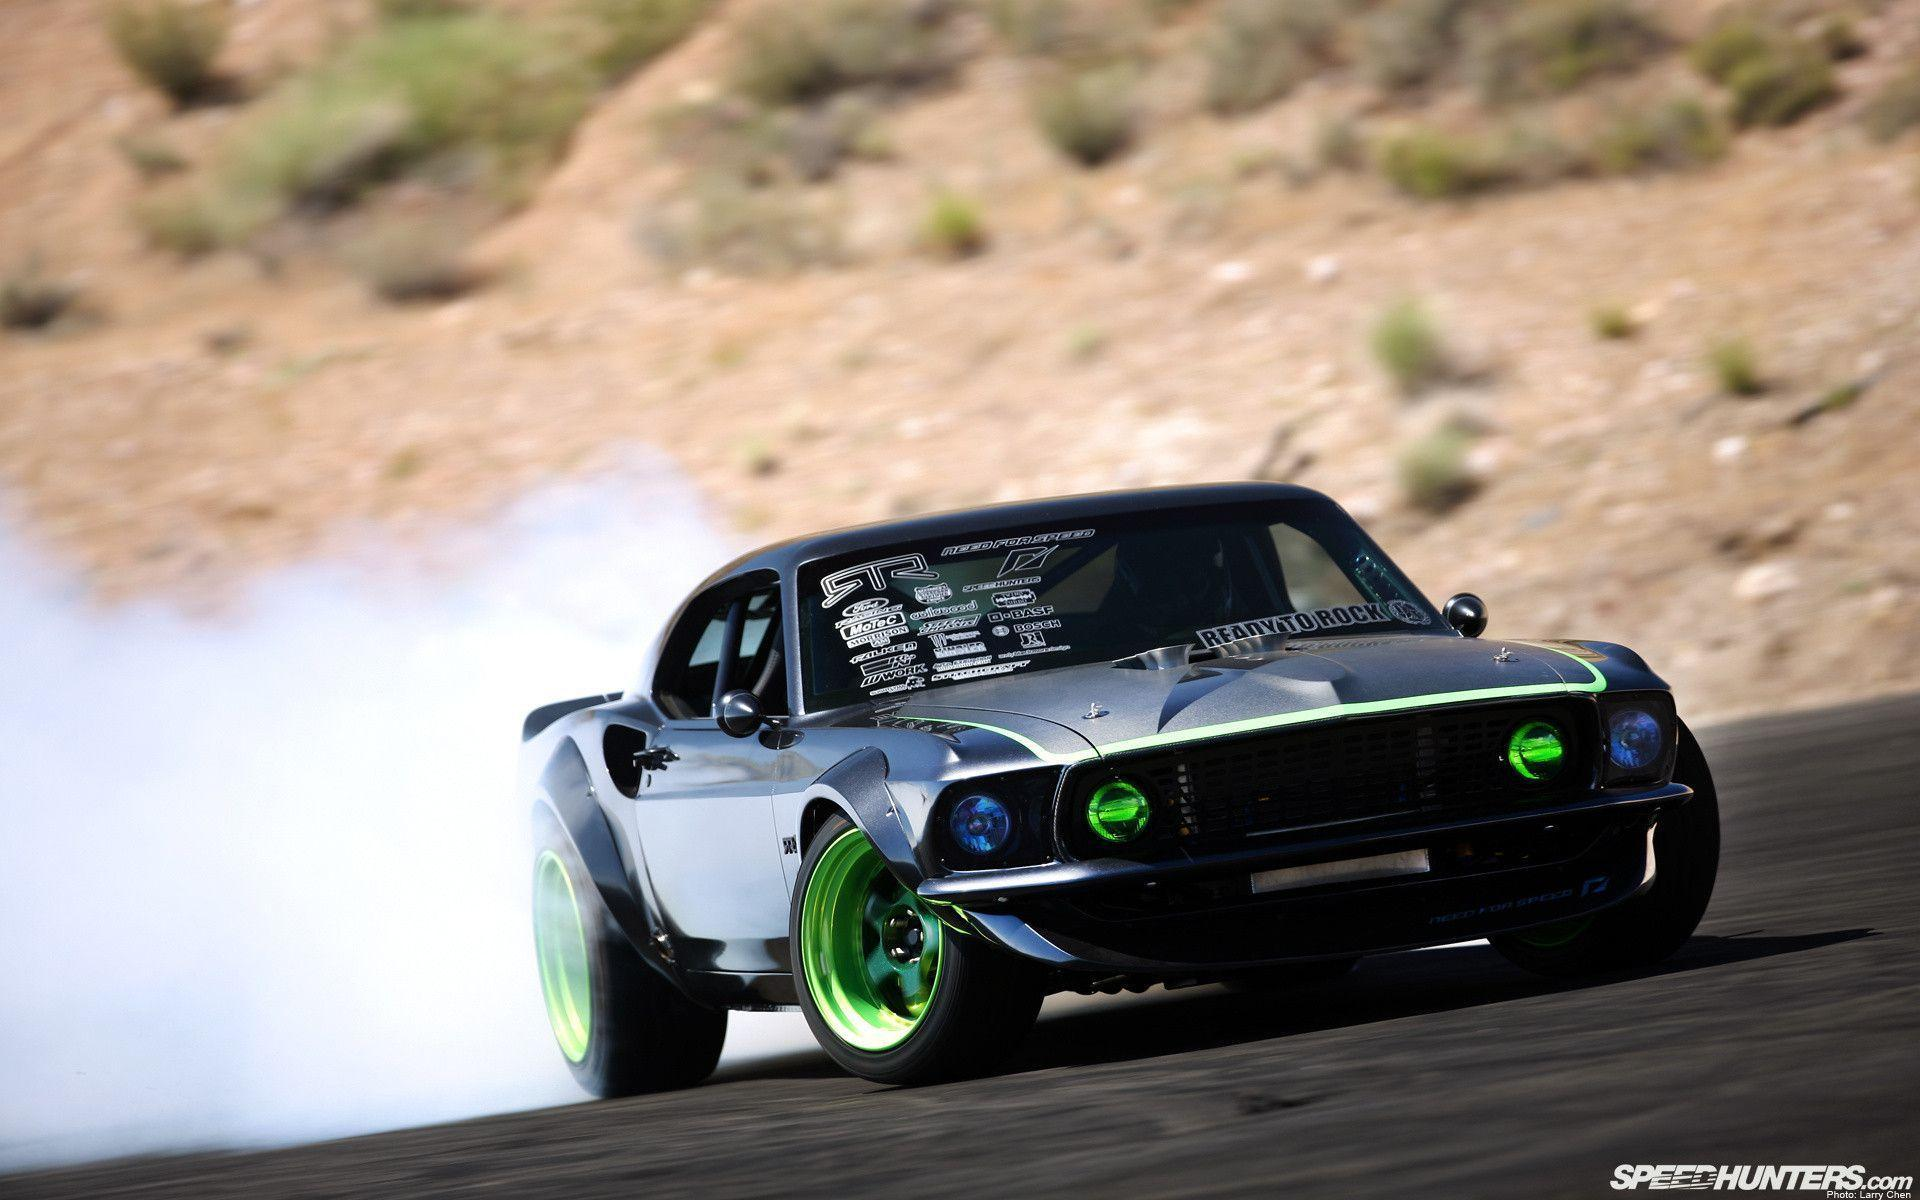 Download Drifting Cars Wallpapers 1920x1200 69 Drifting Cars